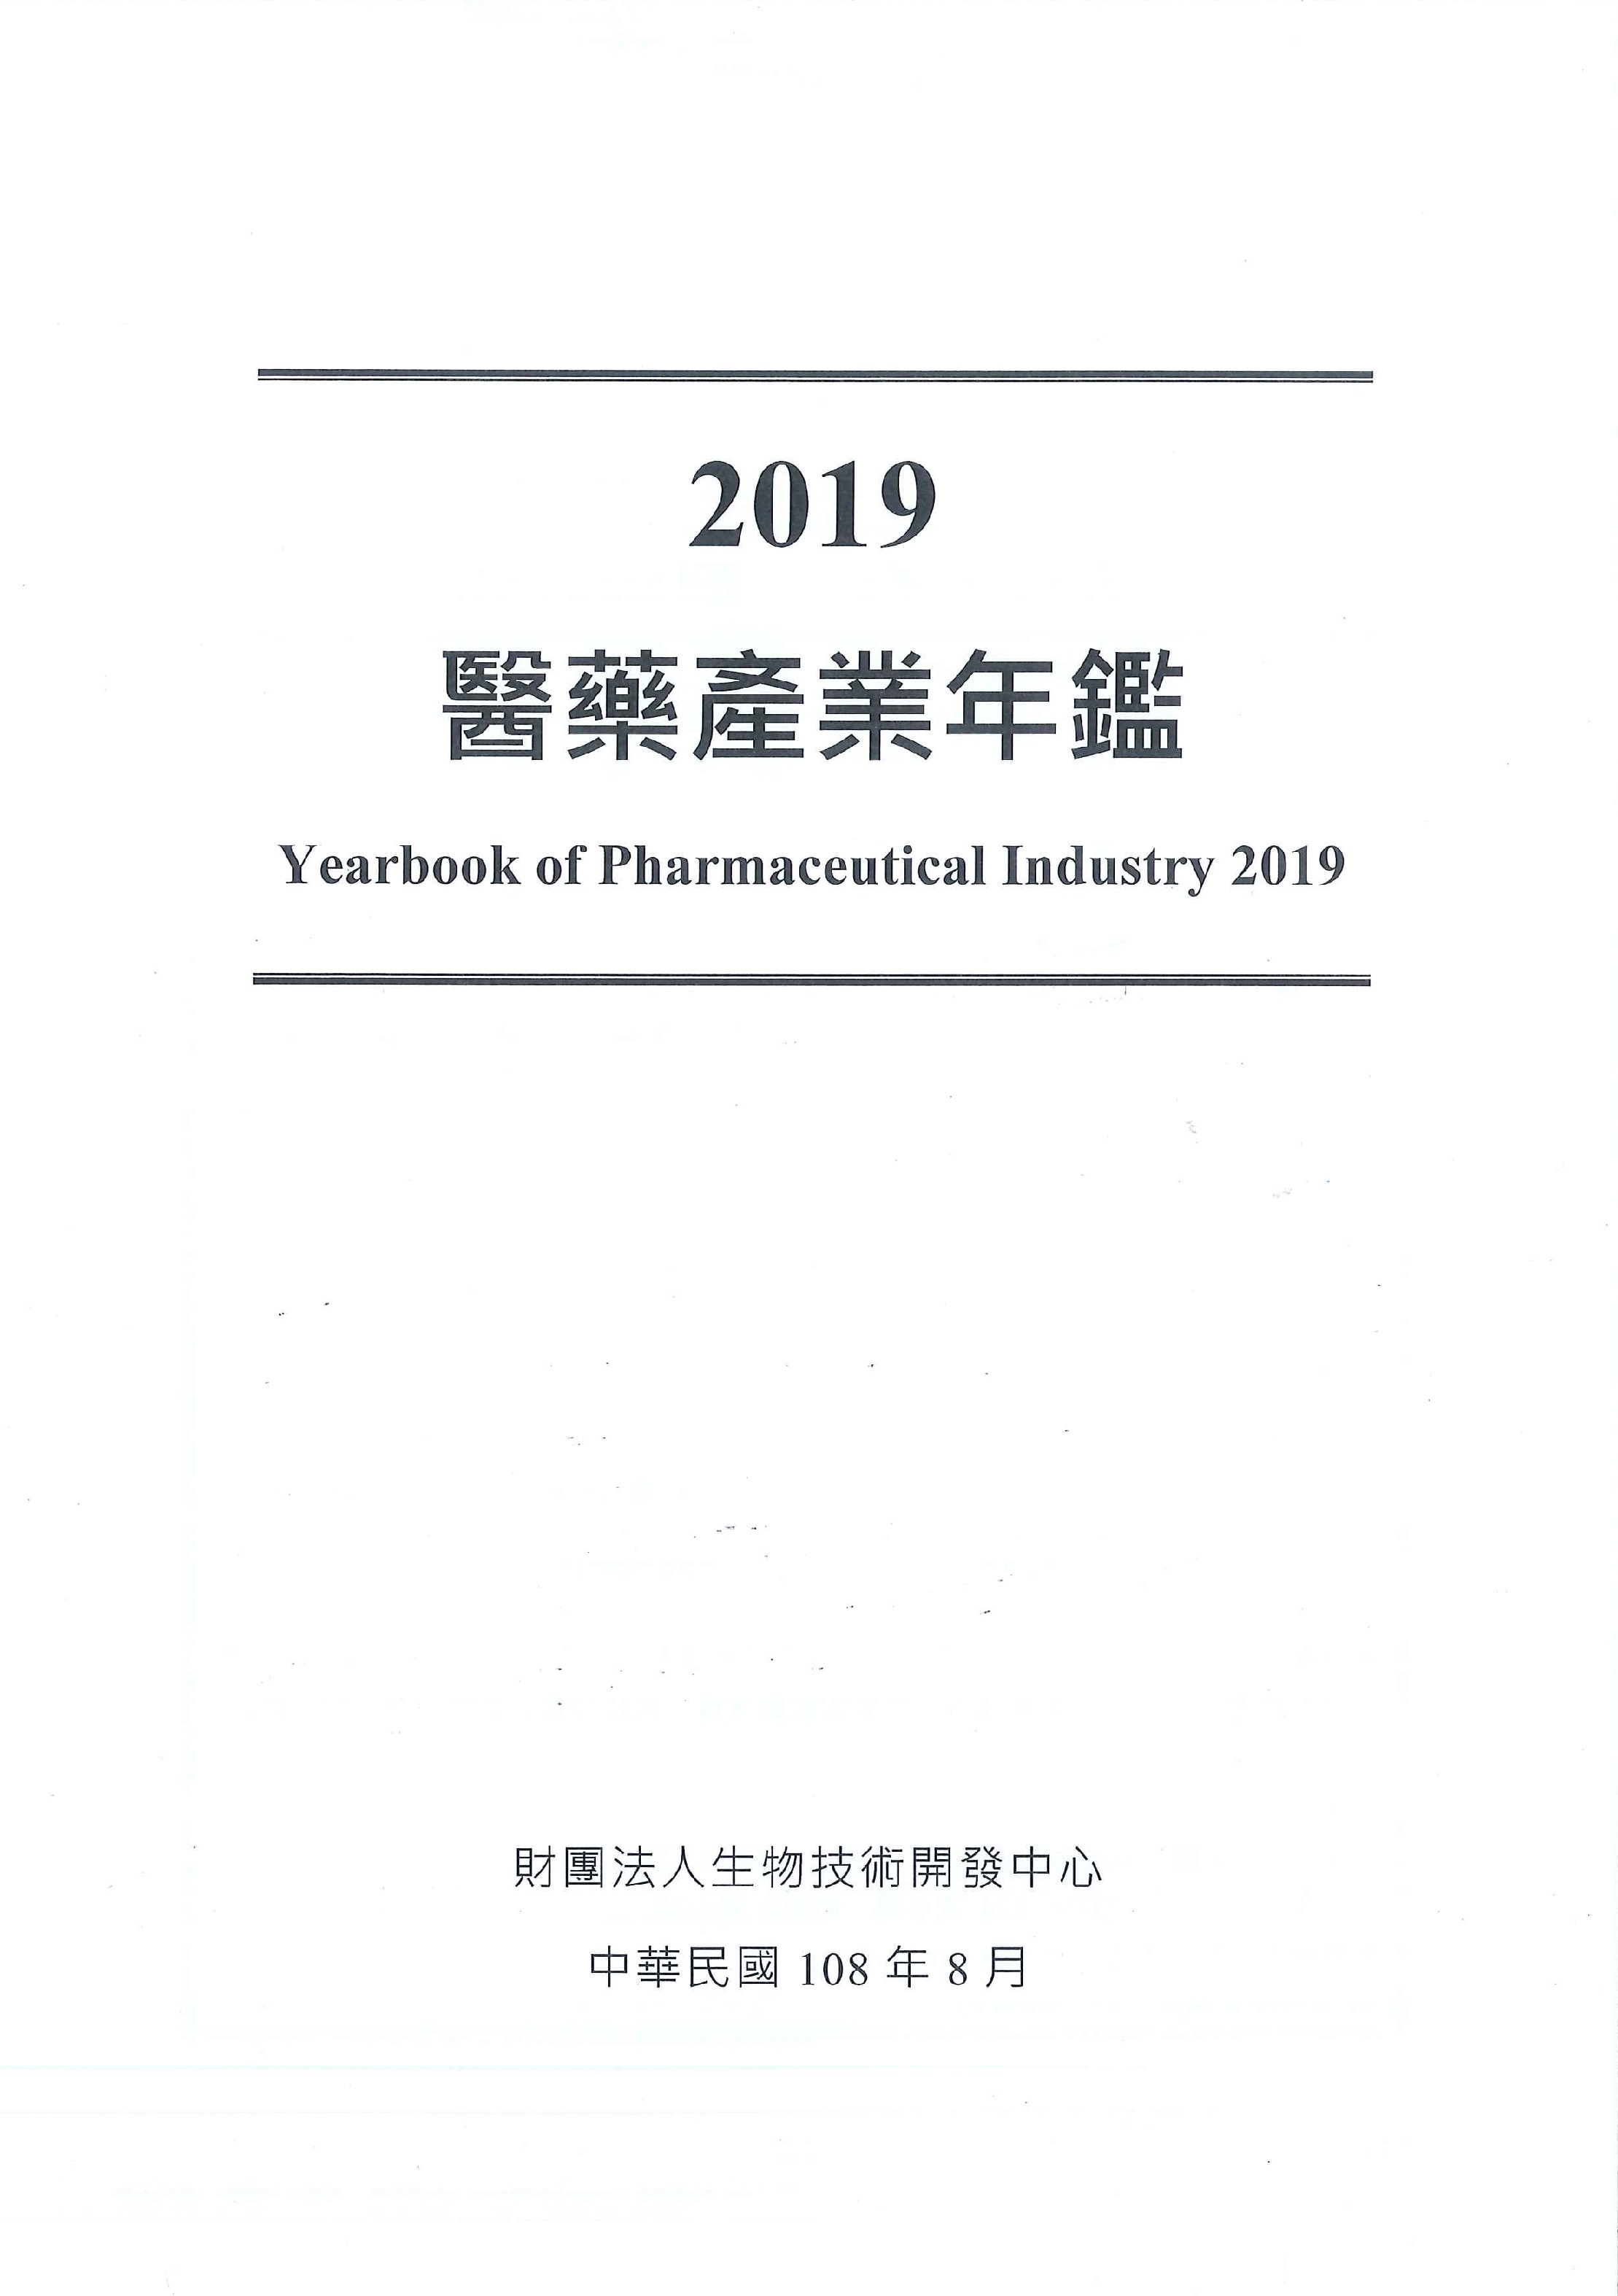 醫藥產業年鑑=Yearbook of pharmaceutical industry